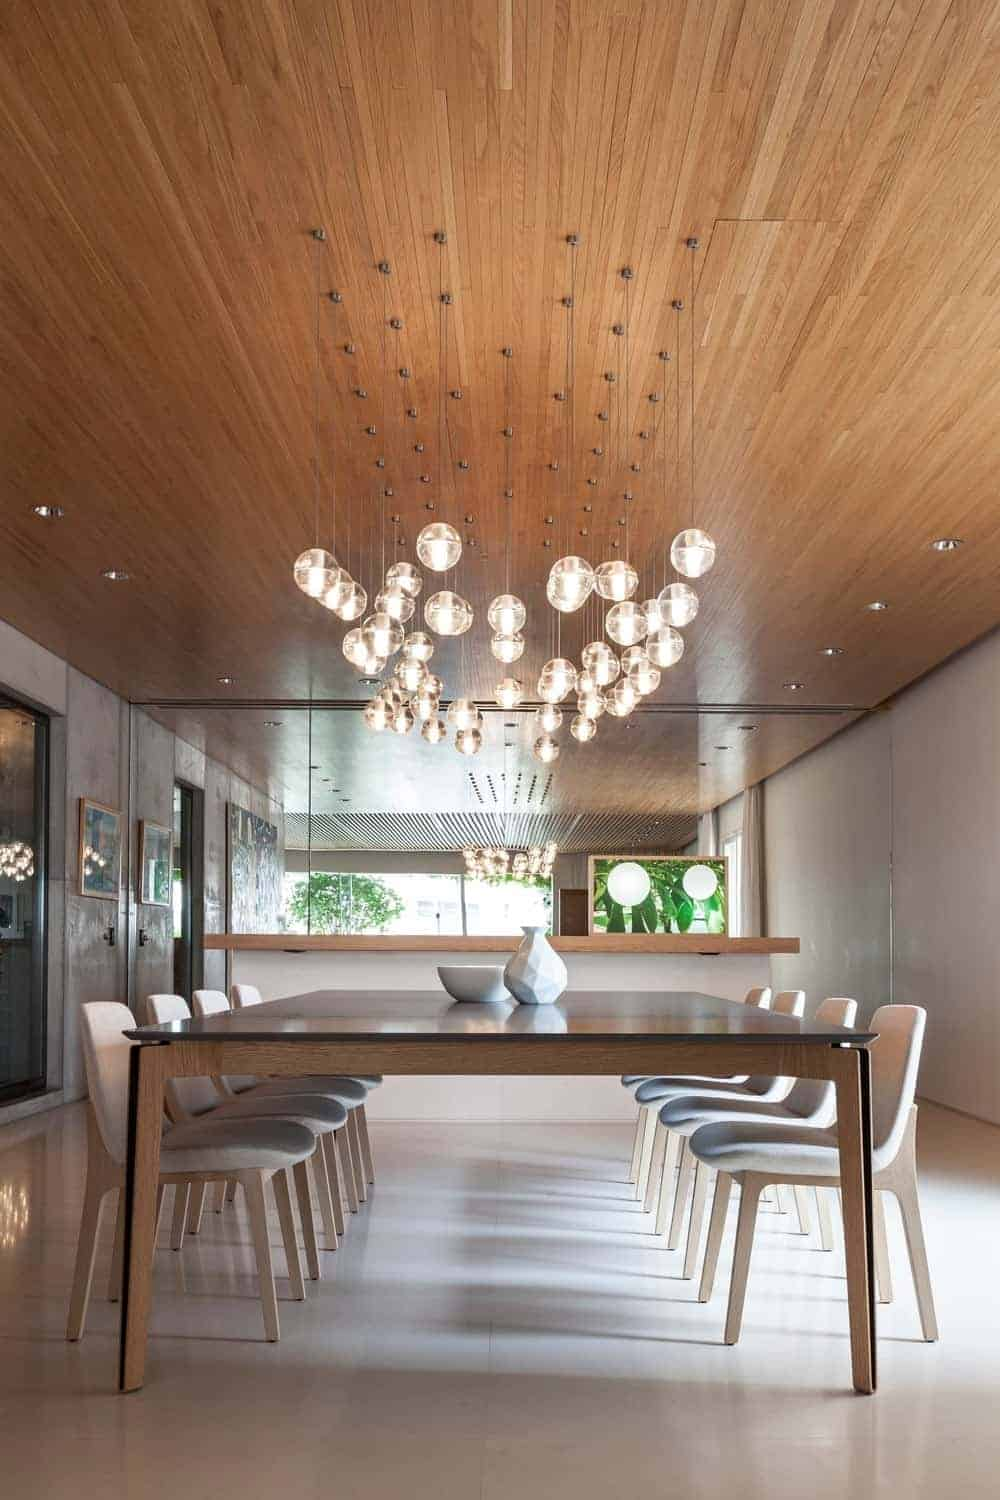 This dining room features a mirrored wall and sleek white chairs that sit at a wooden dining table topped with modern bowl and vase. It is illuminated by glass globe pendants and recessed lights mounted on the wood paneled ceiling.